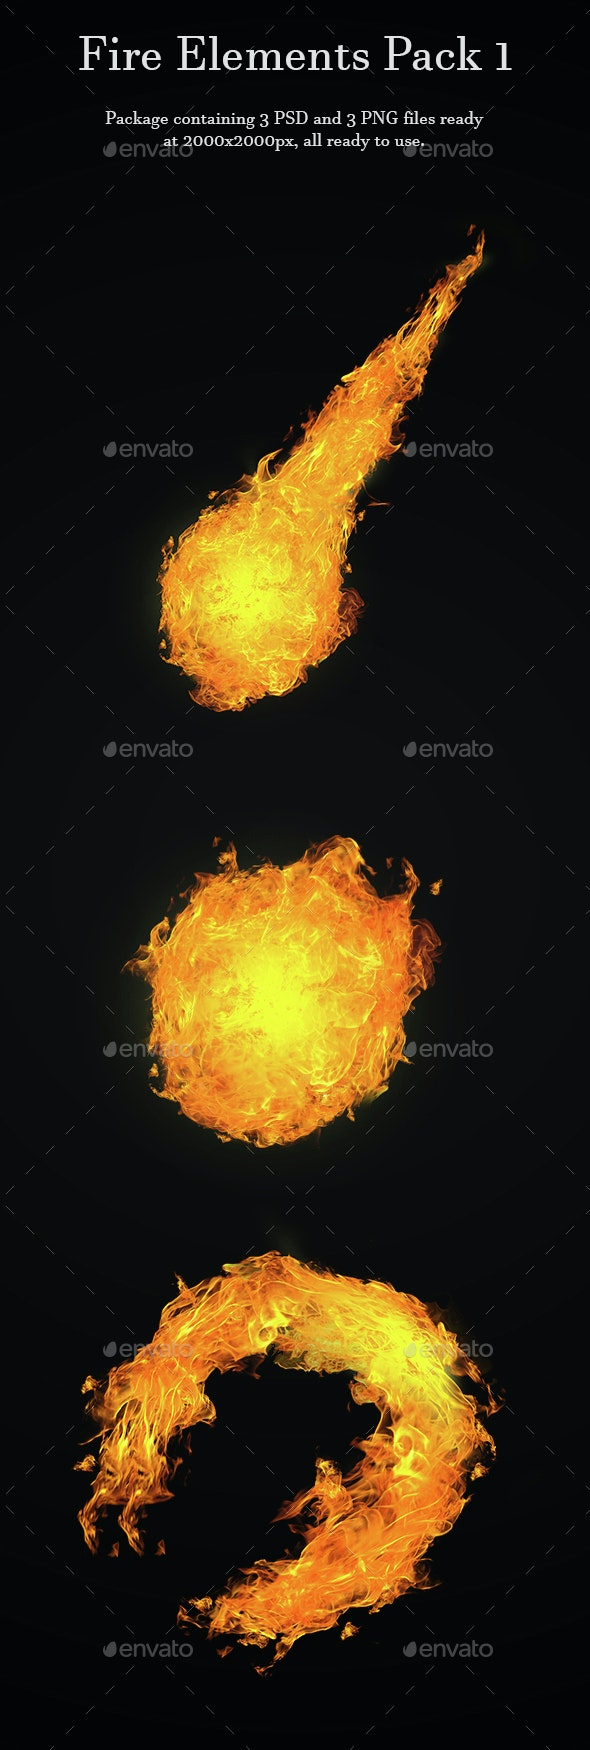 Fire Elements Pack 1 - Miscellaneous Backgrounds